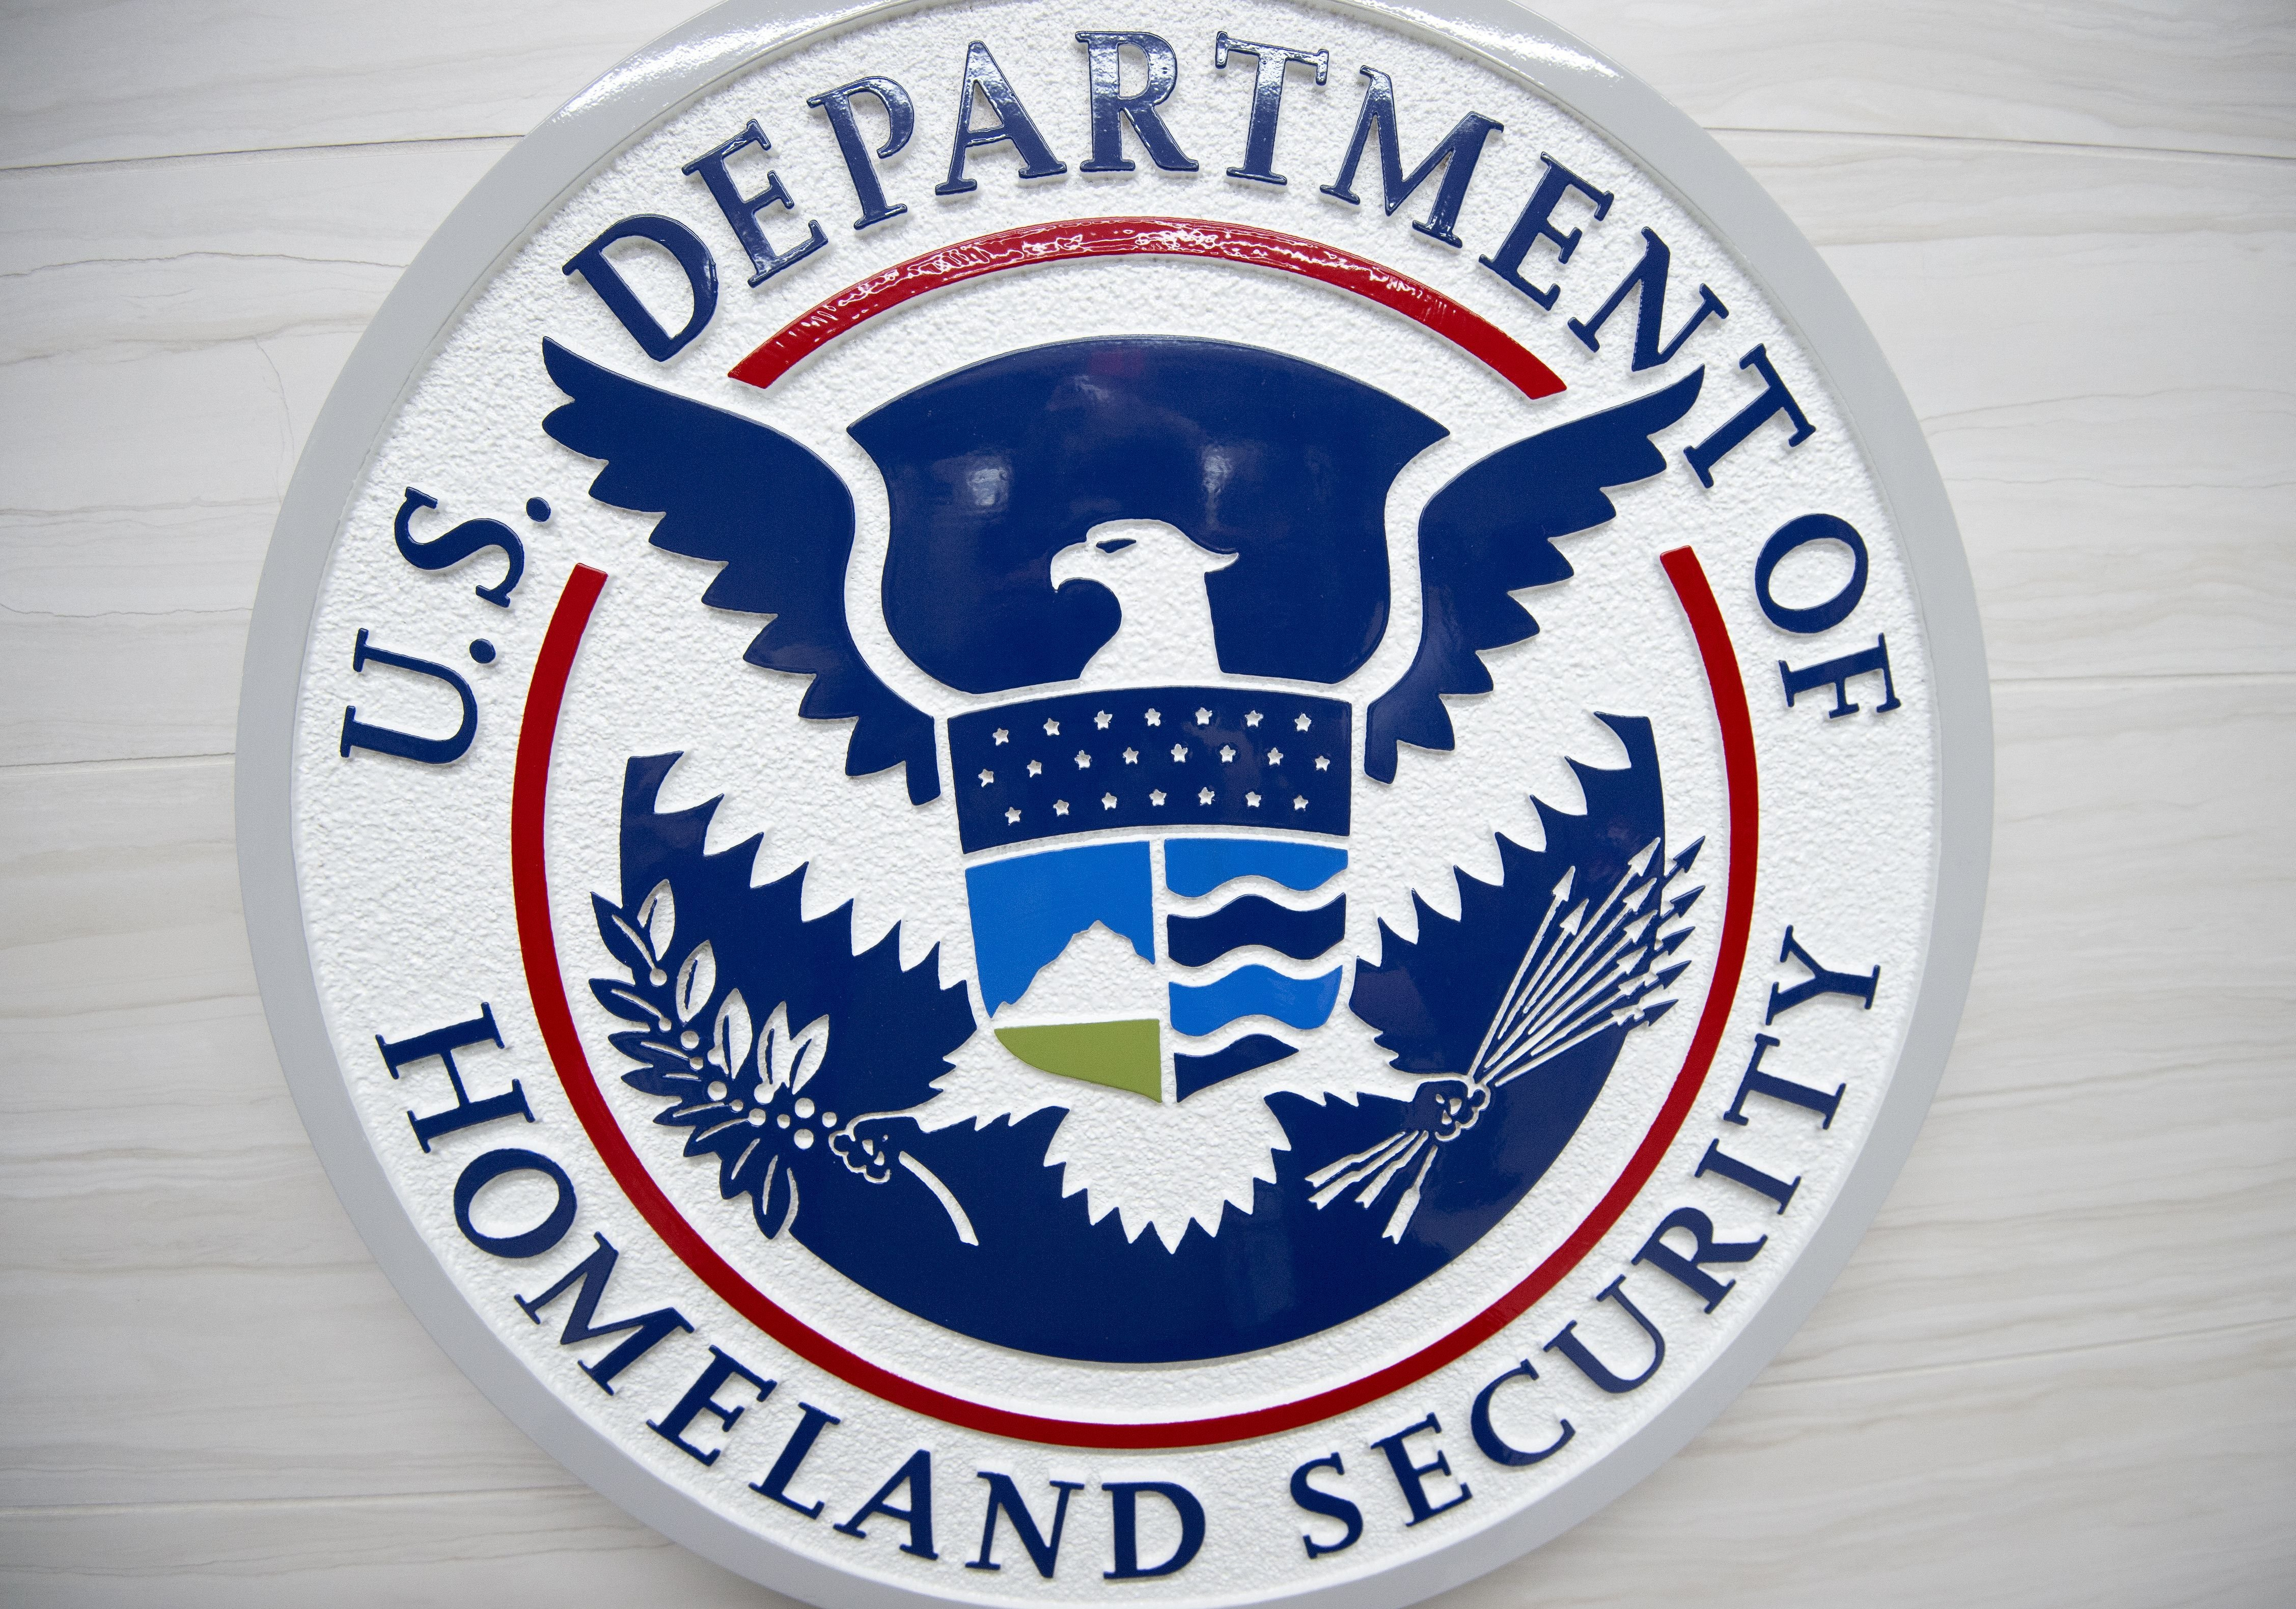 Watchdog says lack of permanent Homeland Security leadership made department issues worse